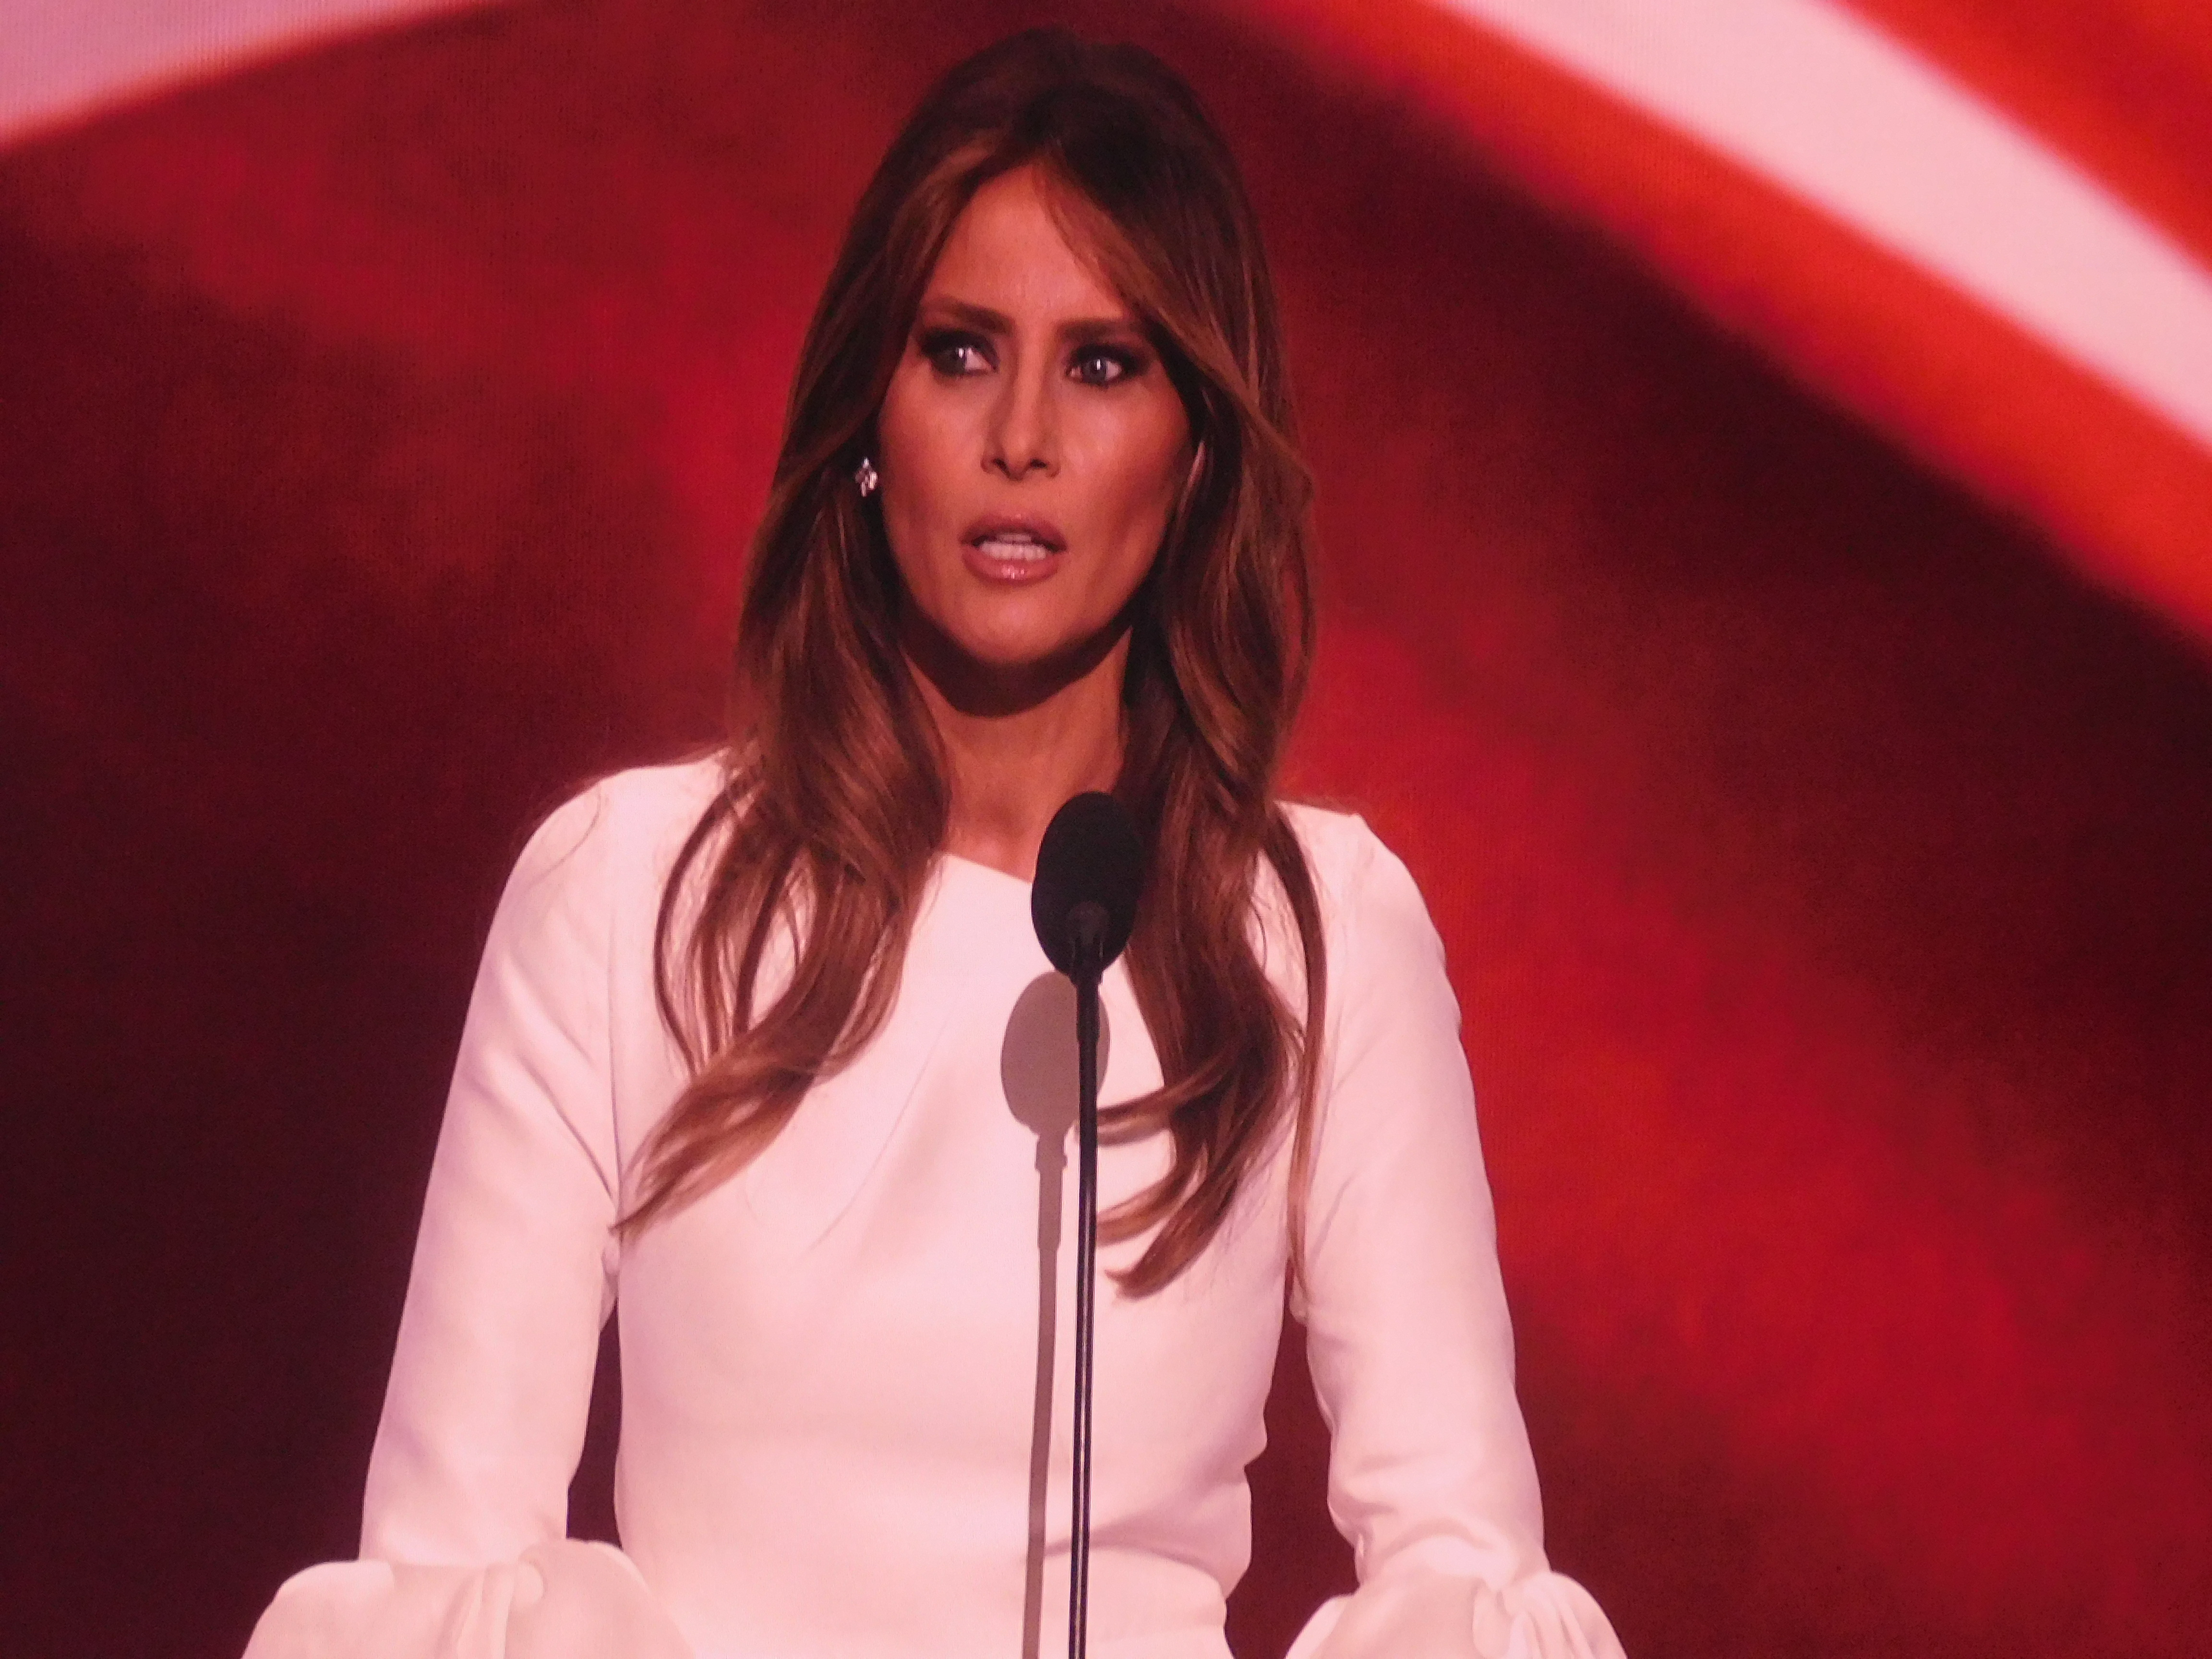 Trump introduced his wife Melania at the convention.